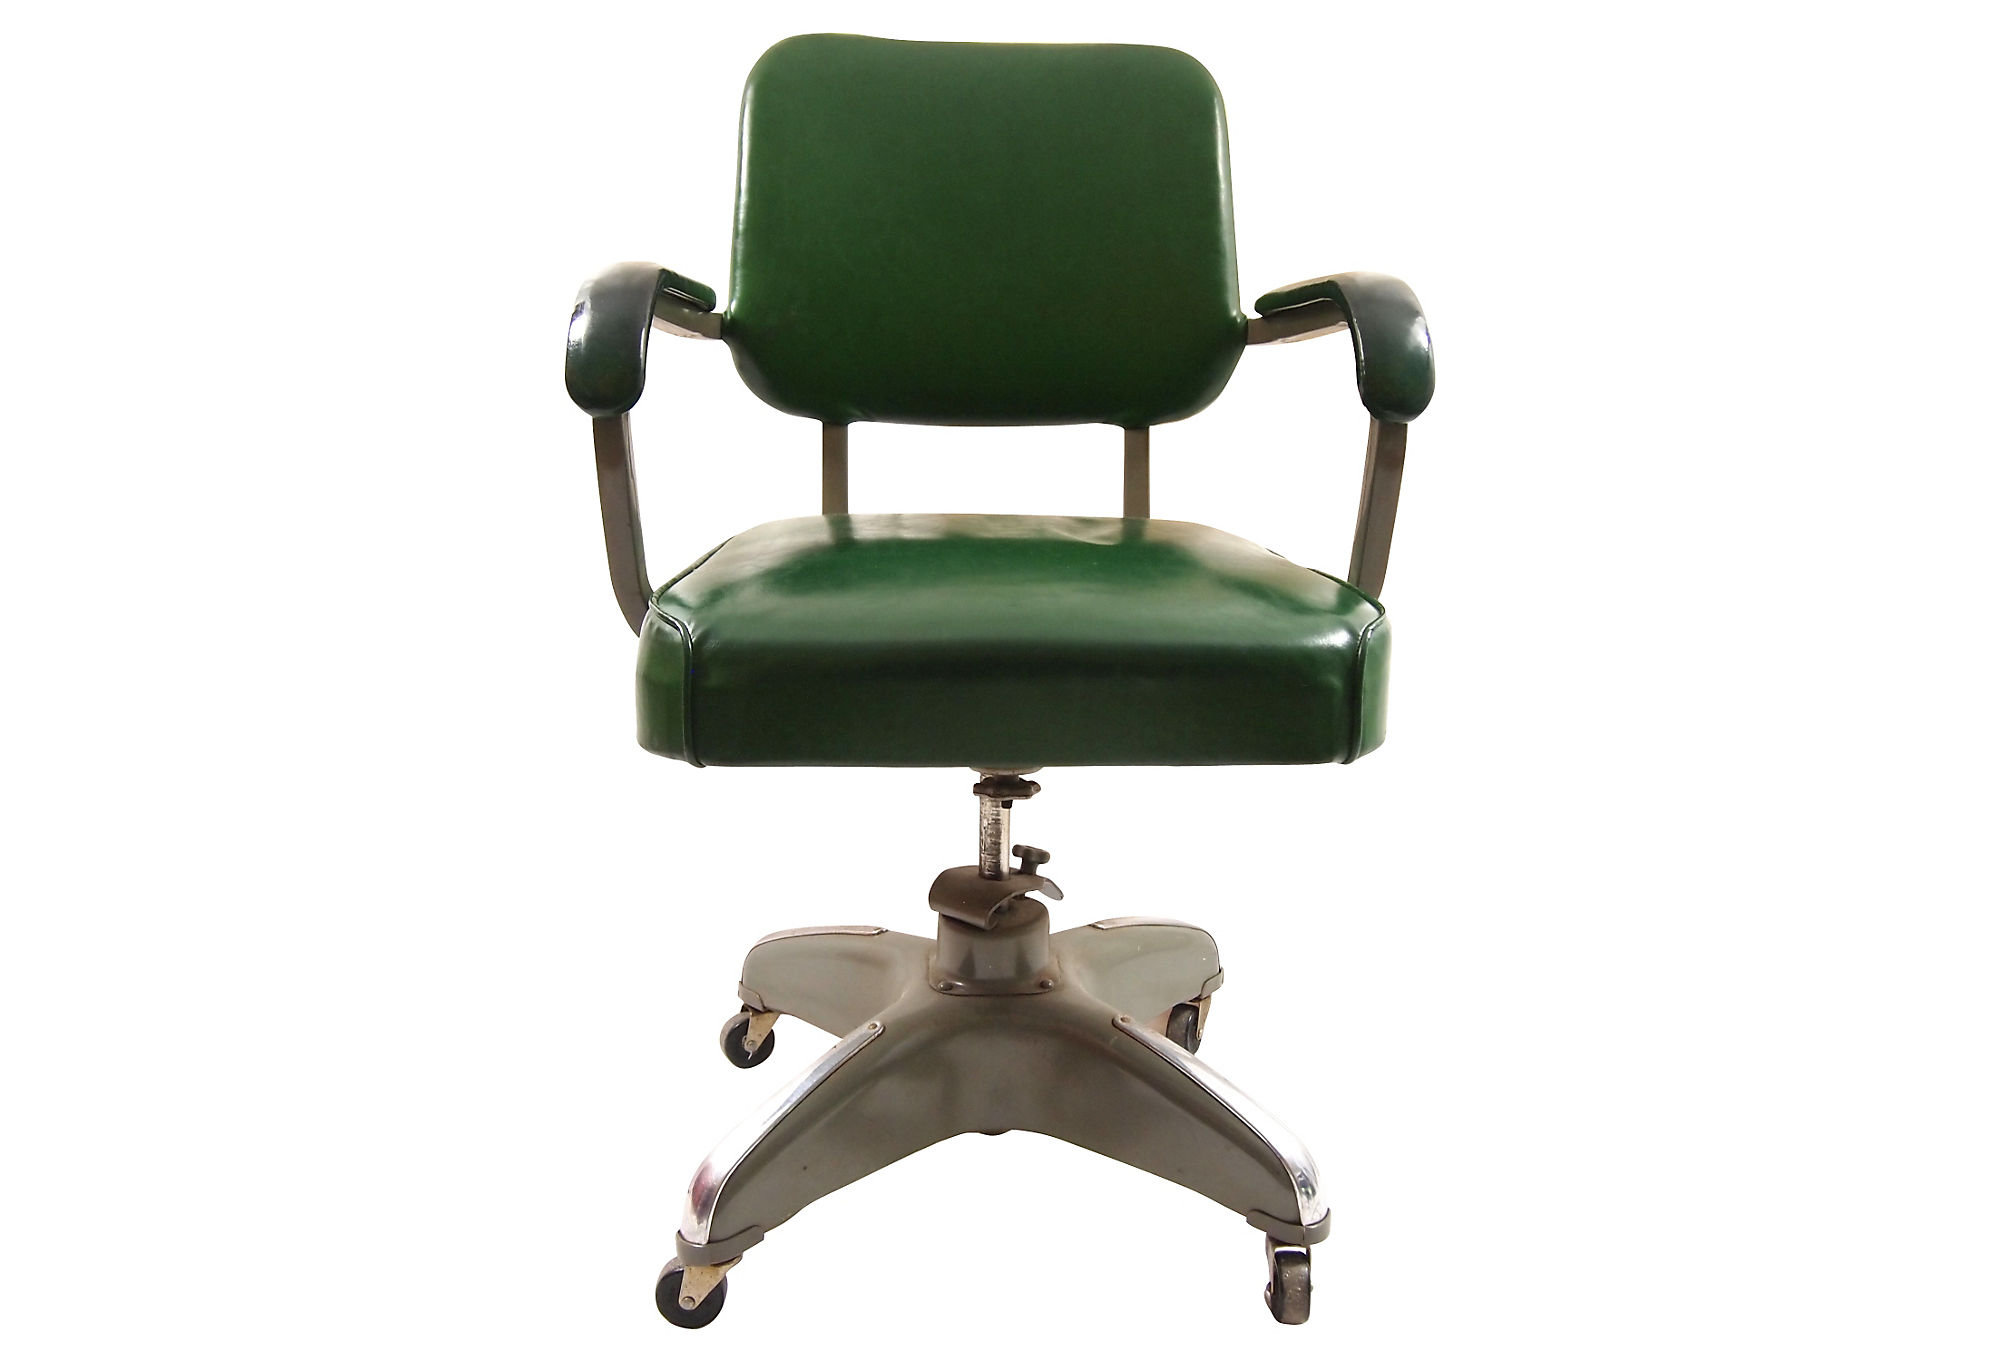 Mid Century Modern Office Chair One Kings Lane Industrial Chic From One Kings Lane